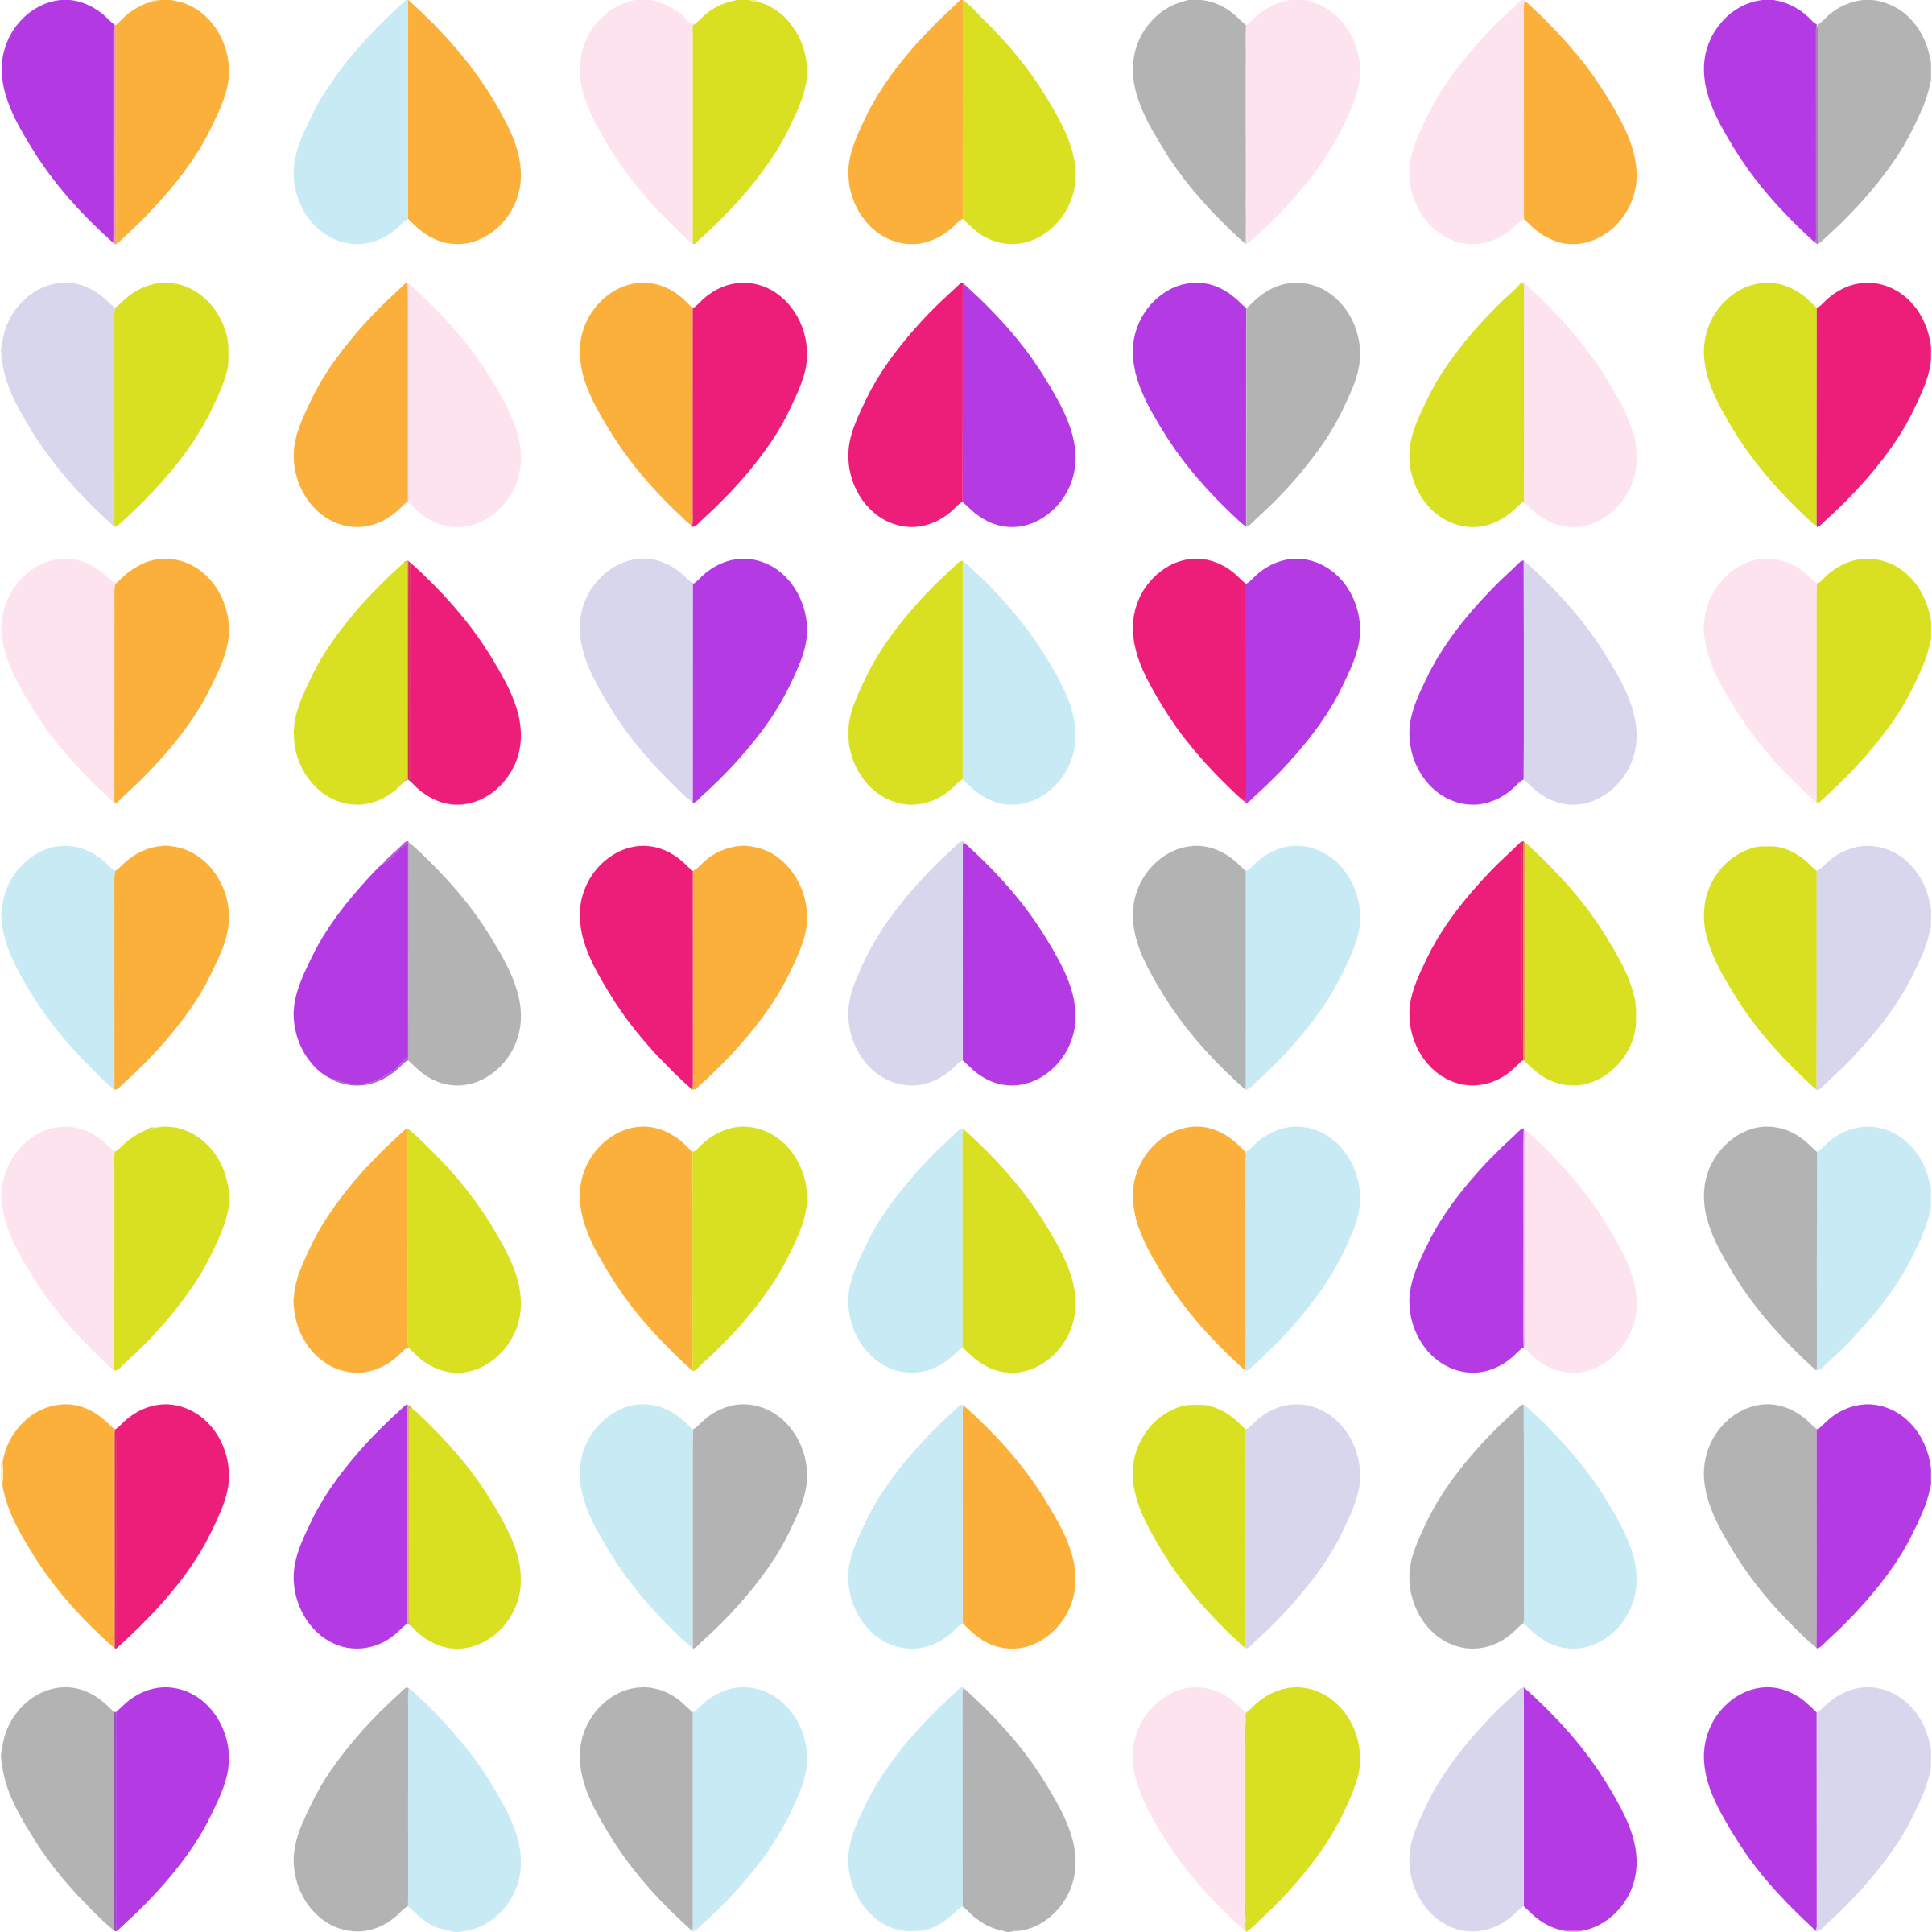 Heart wallpaper clipart graphic download Clipart - Colorful Hearts Pattern Wallpaper graphic download